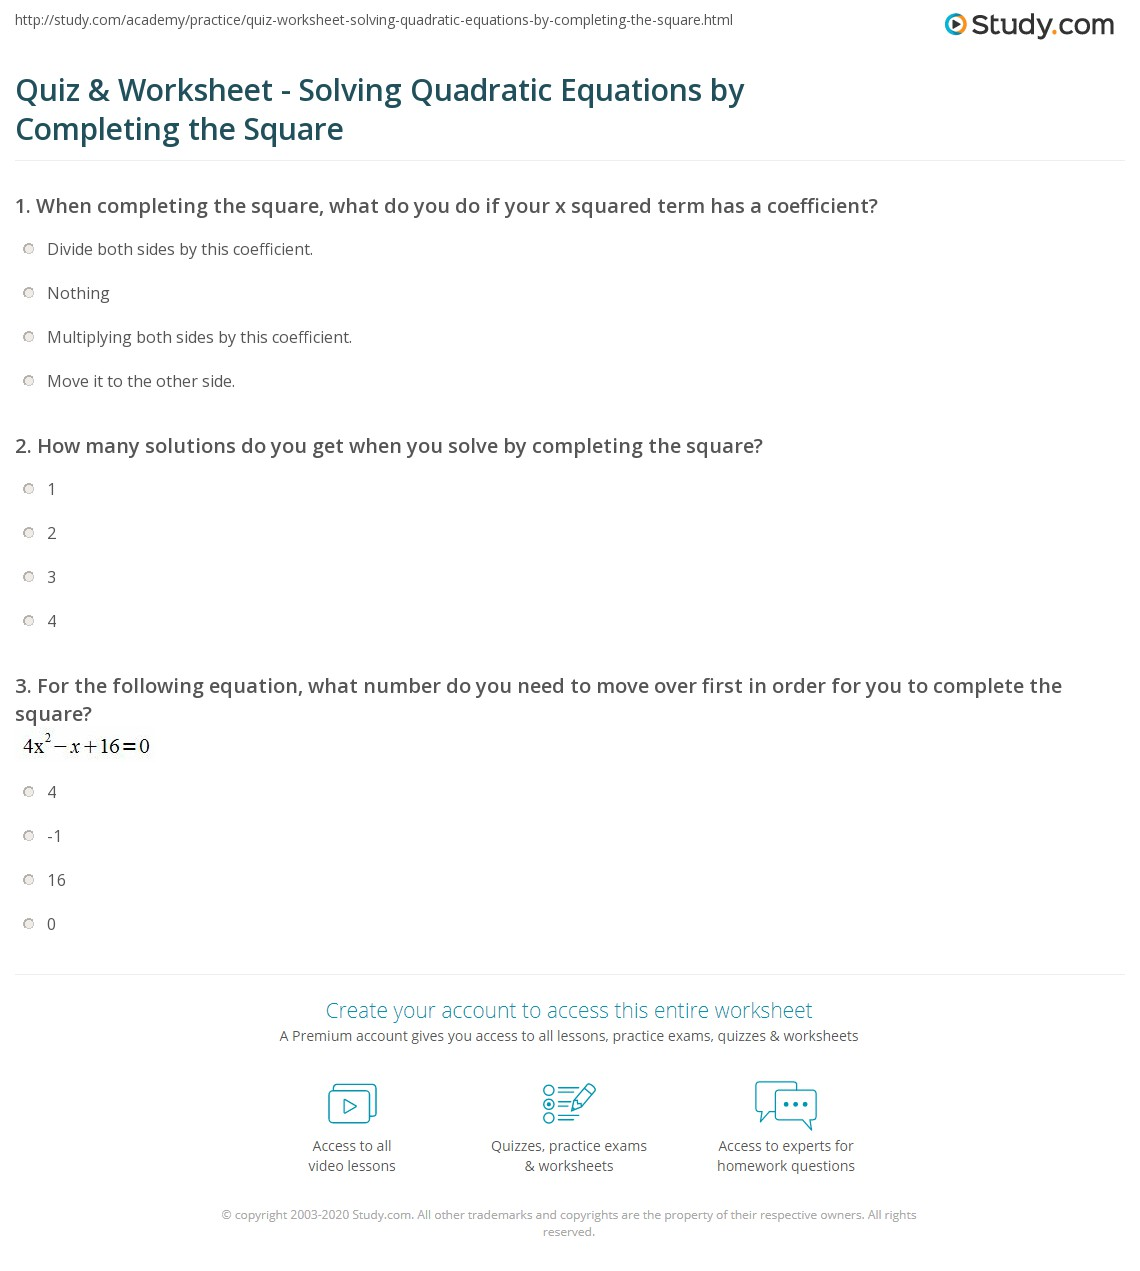 Quiz Worksheet Solving Quadratic Equations By Completing The